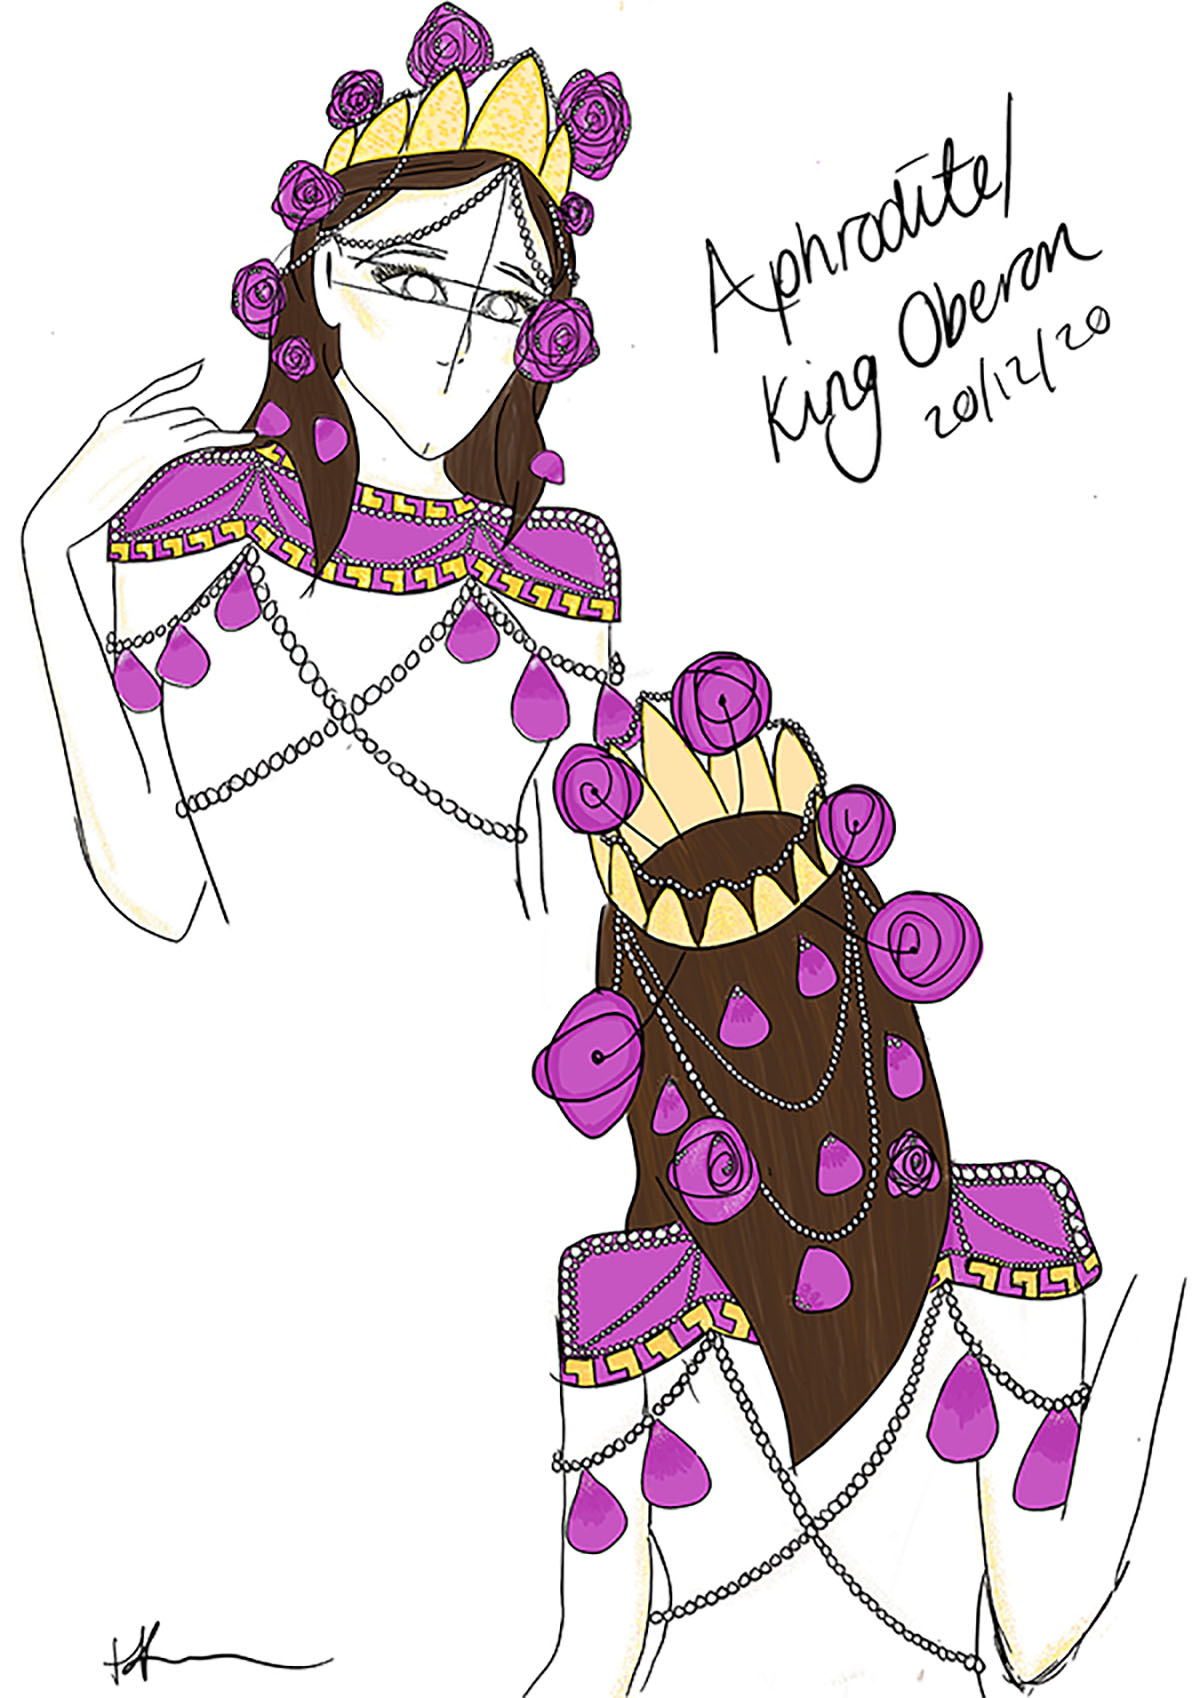 Design for Aphrodite in my own adaption of Shakespeare's A Midsummer Night's Dream